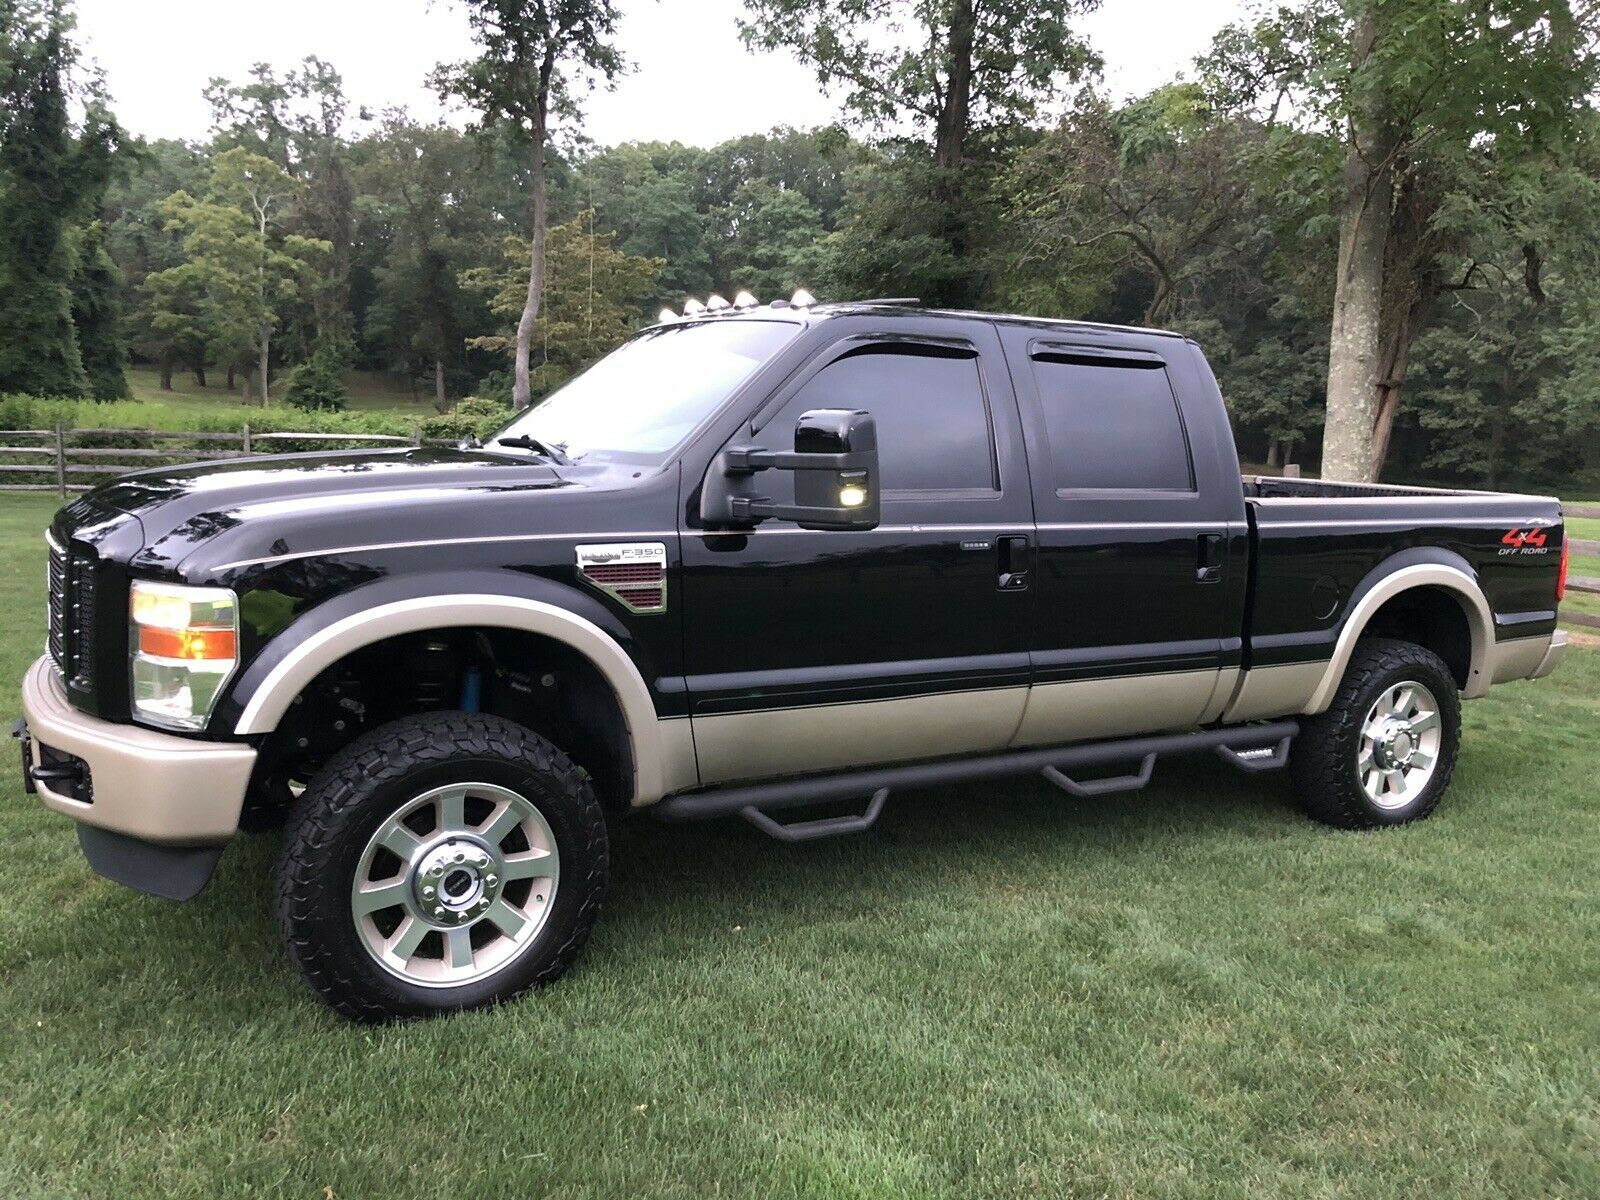 garage kept 2008 Ford F 350 King Ranch lifted for sale